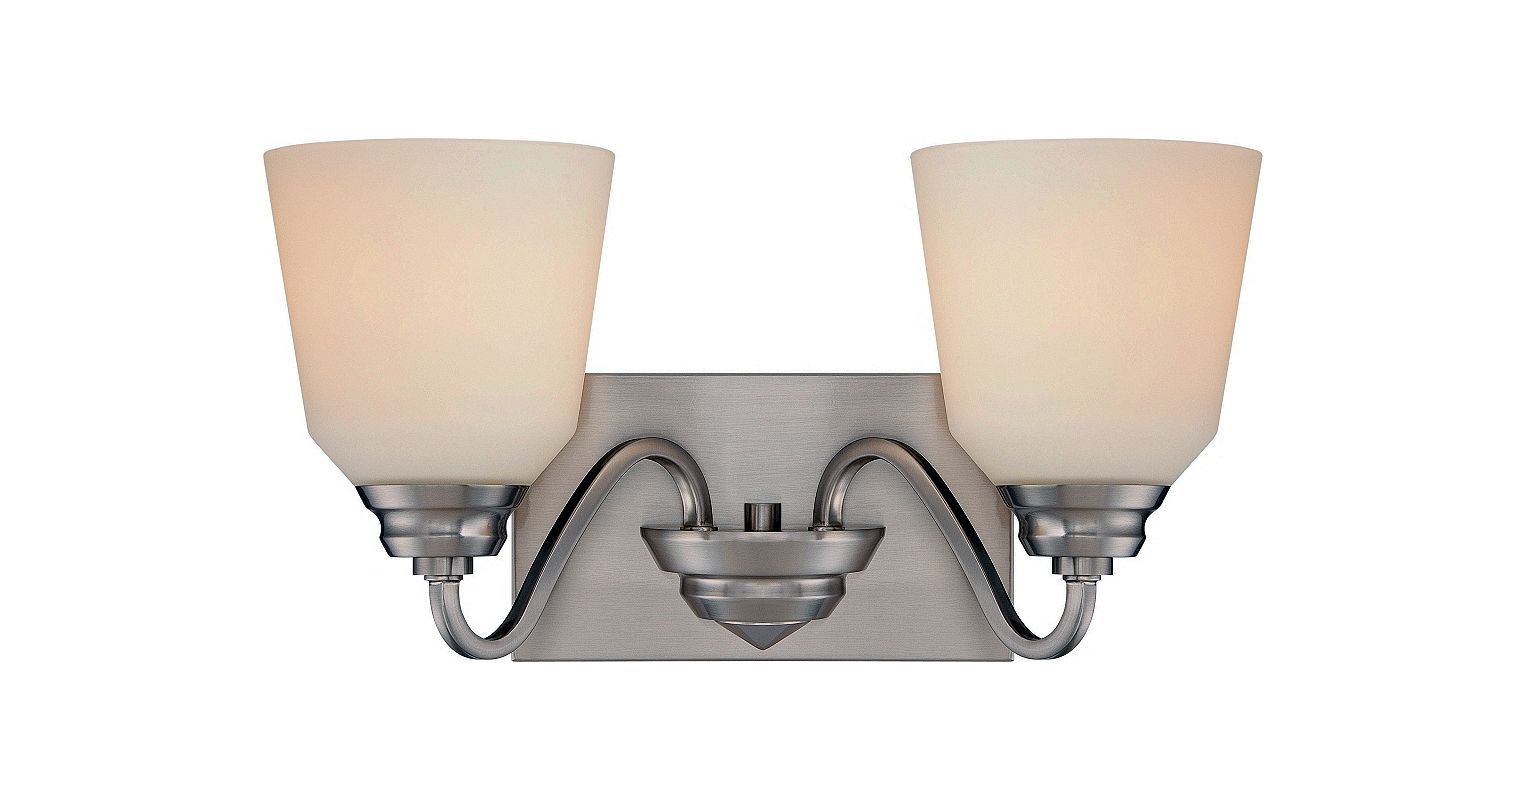 Nuvo Lighting 62/367 Calvin 2 Light LED Energy Star Bathroom Sconce